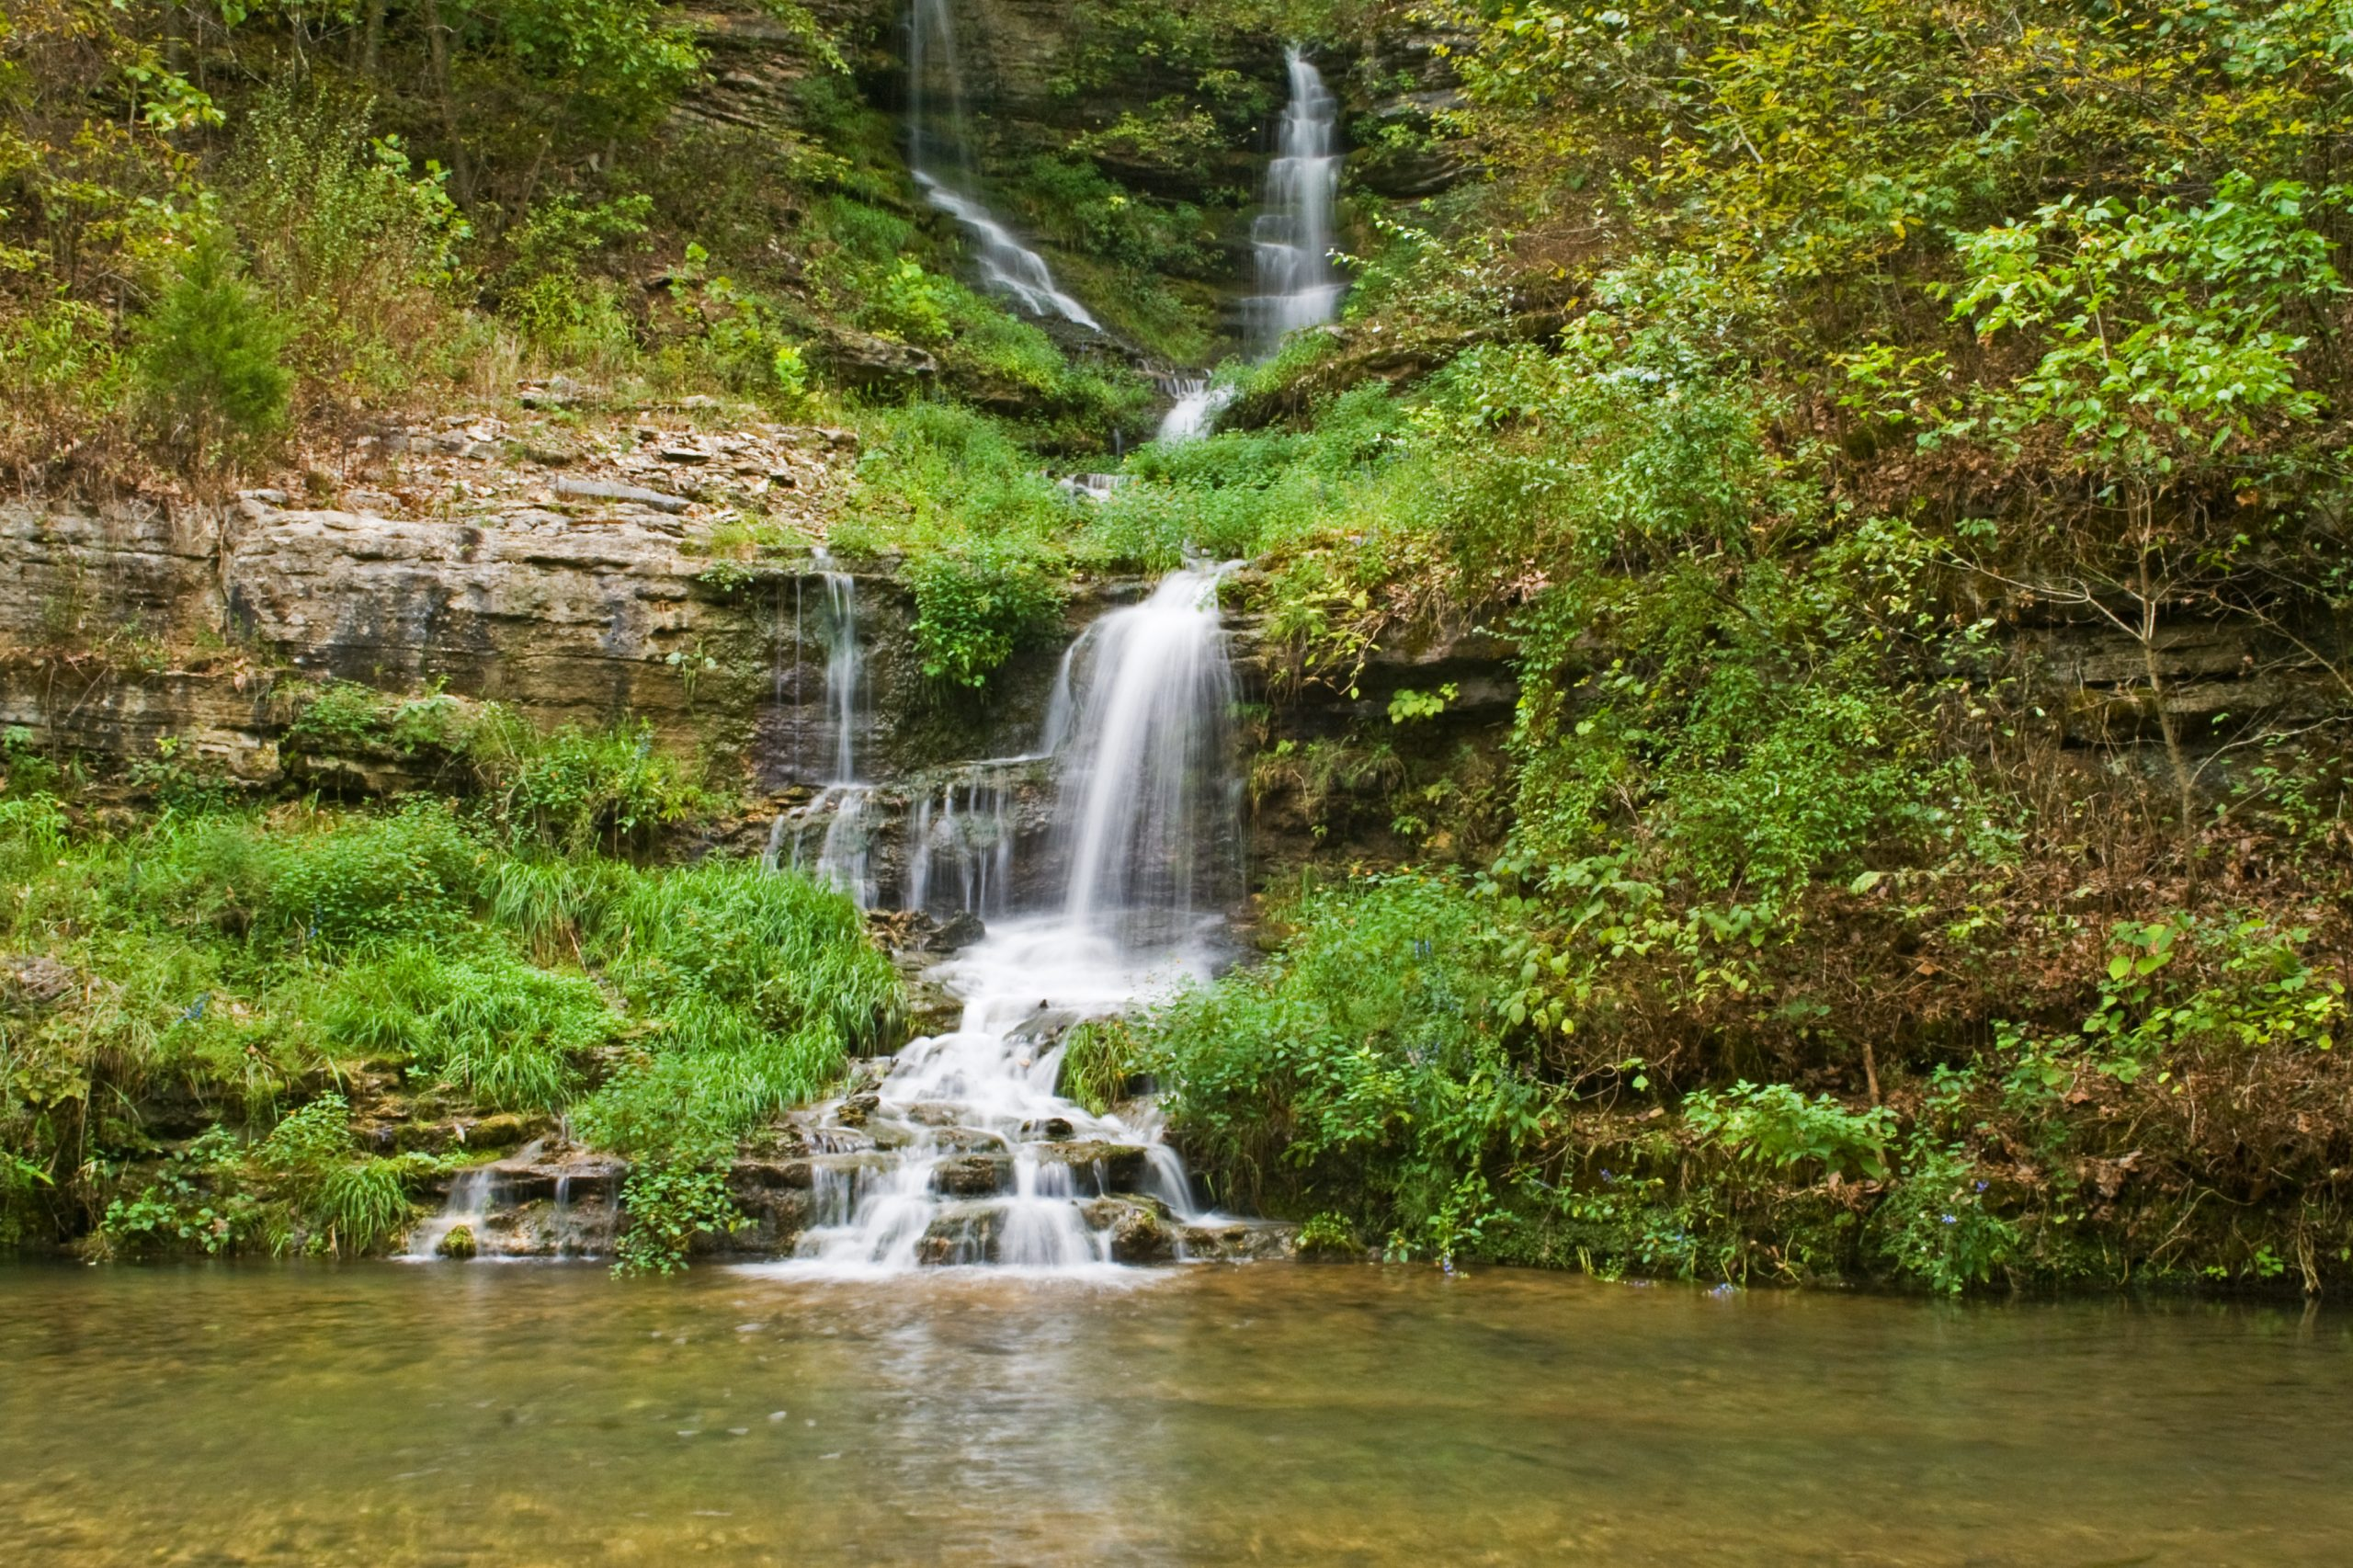 waterfall near branson missouri, one of the best weekend trips from dallas tx